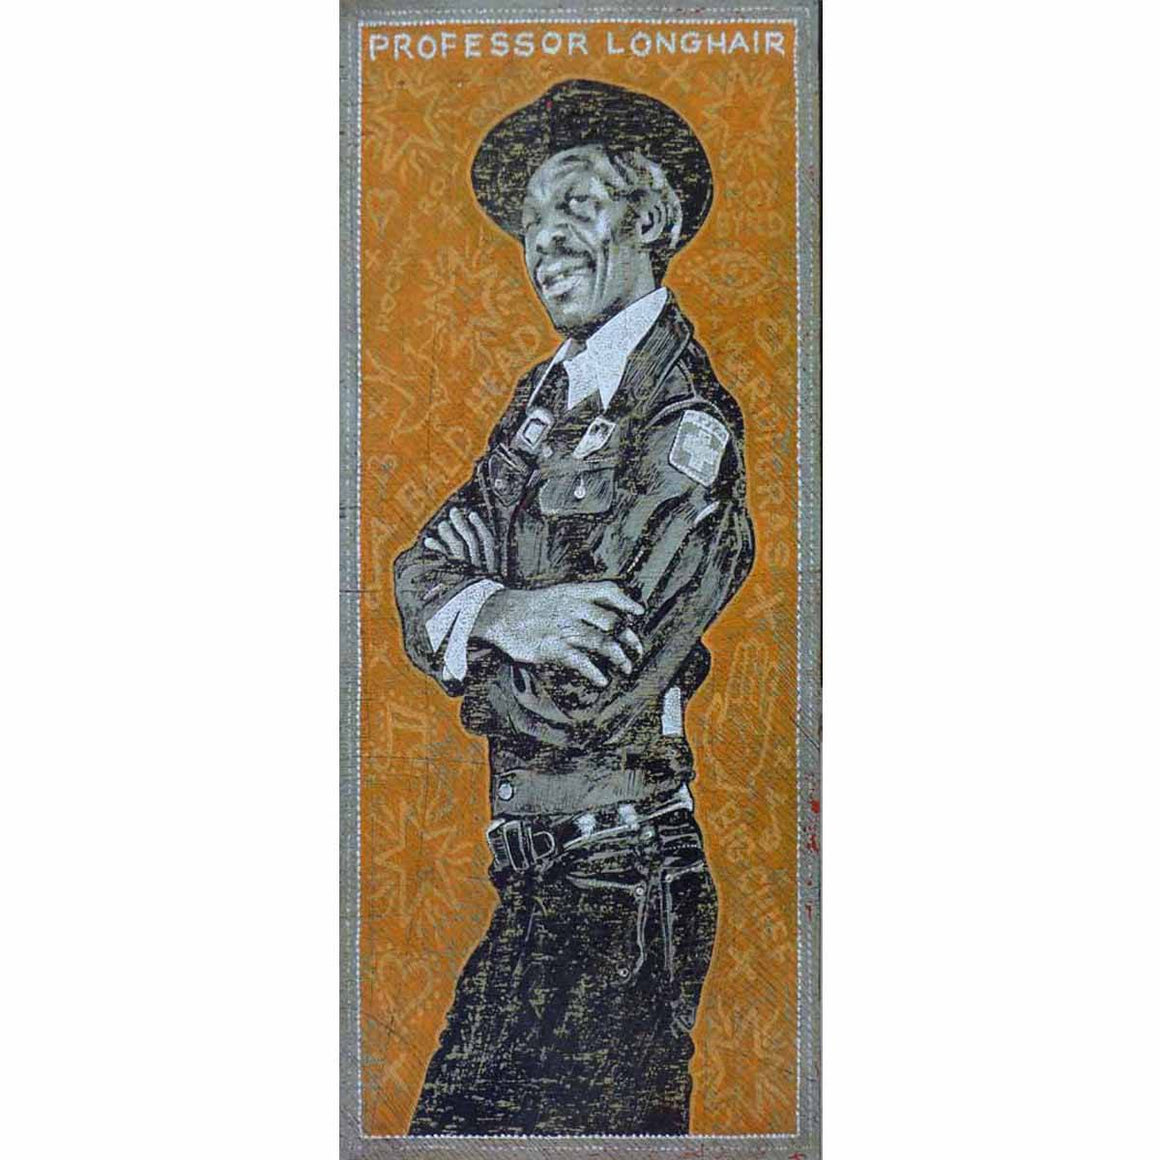 Professor Longhair - Jon Langford - Yard Dog Art